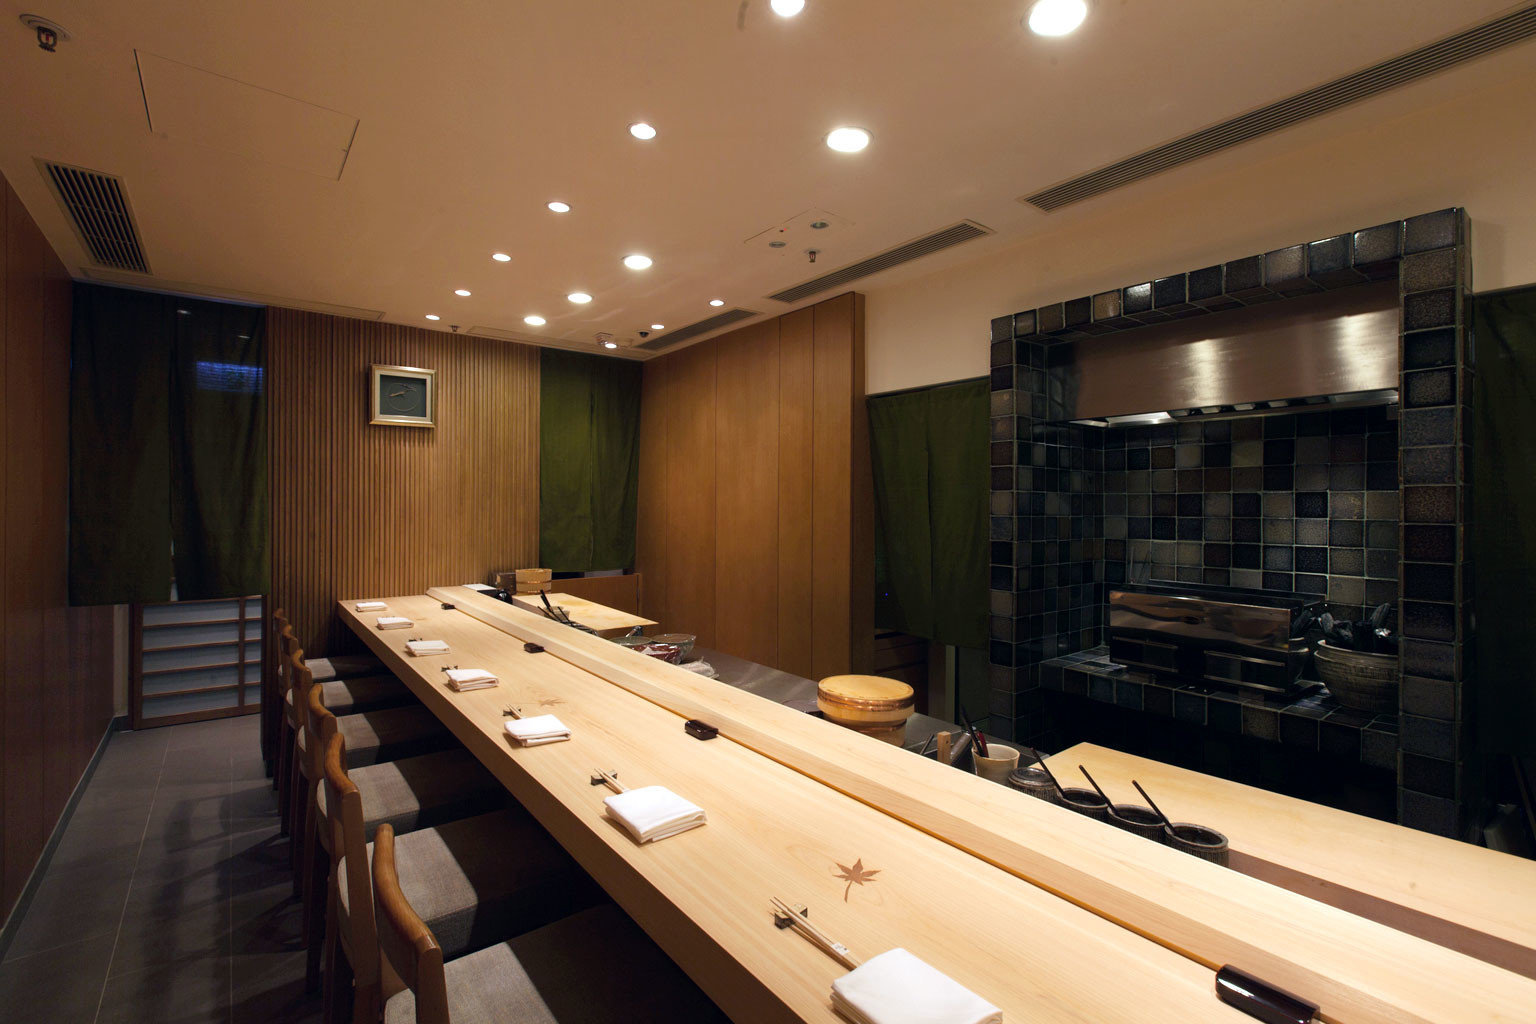 Boutique City Dining Drink Eat Modern auditorium conference hall lighting recreation room Lobby restaurant